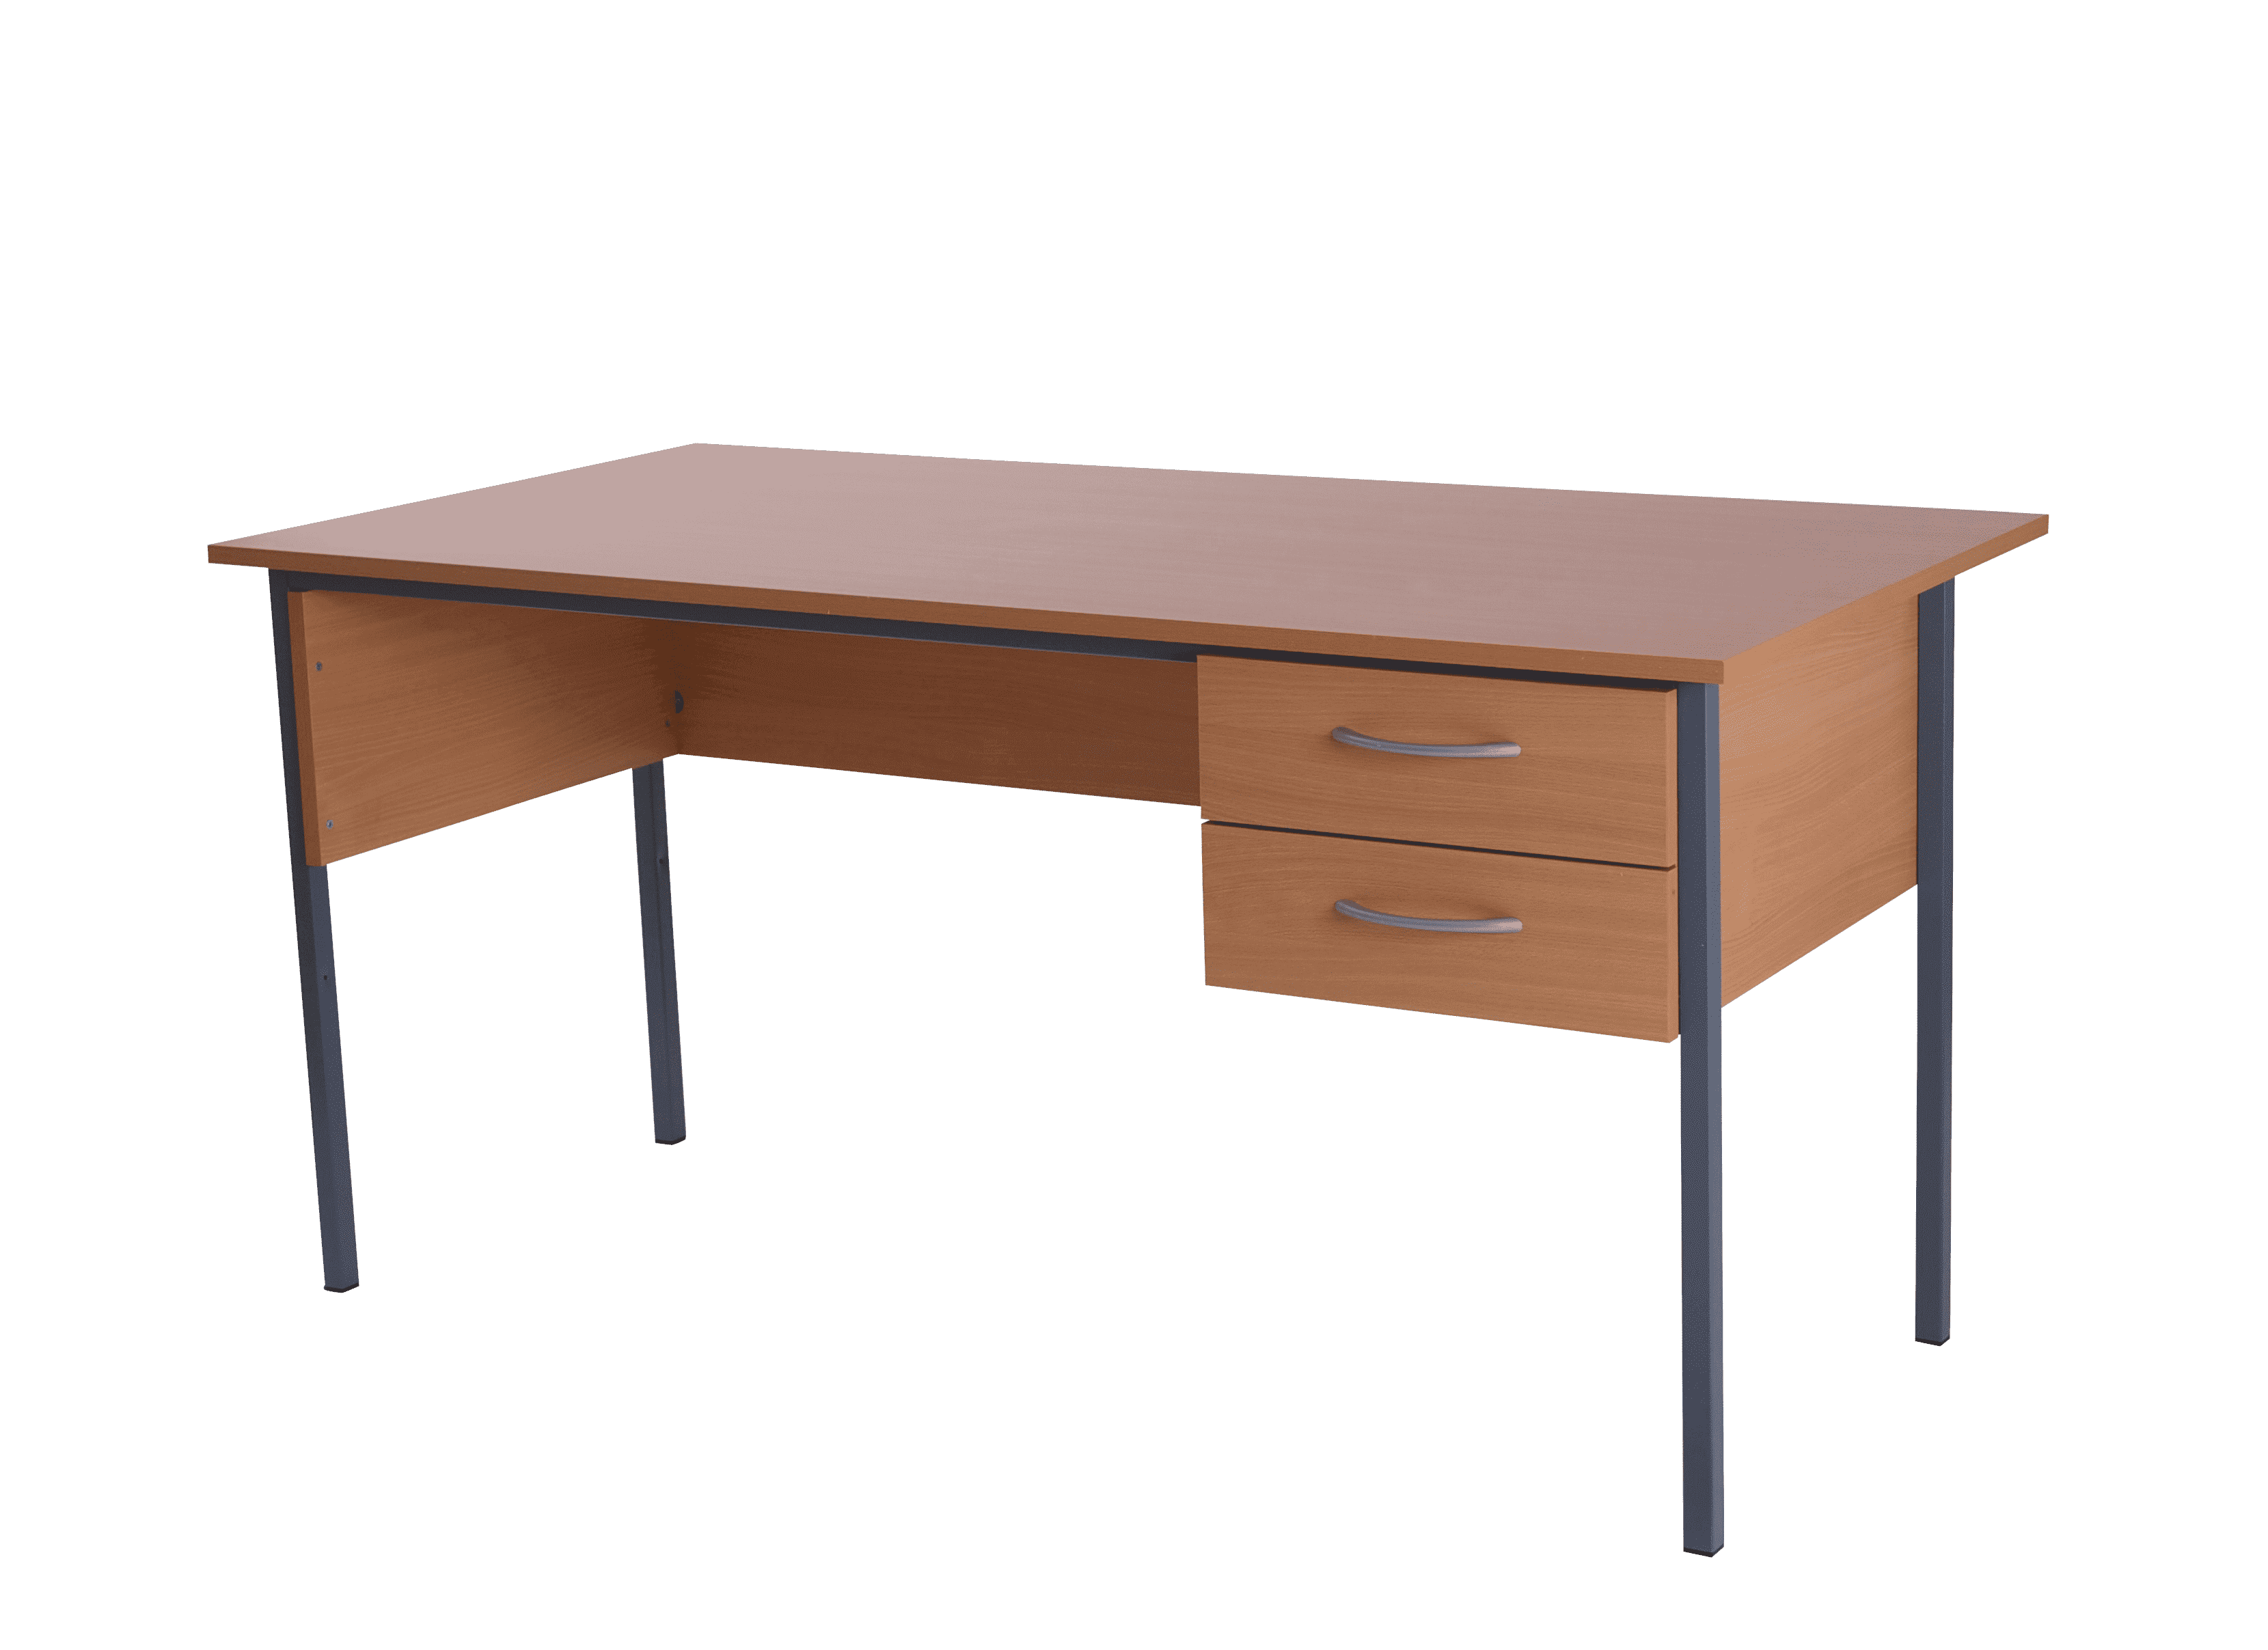 Basix 1200 Admiralty desk with 2 standard drawers